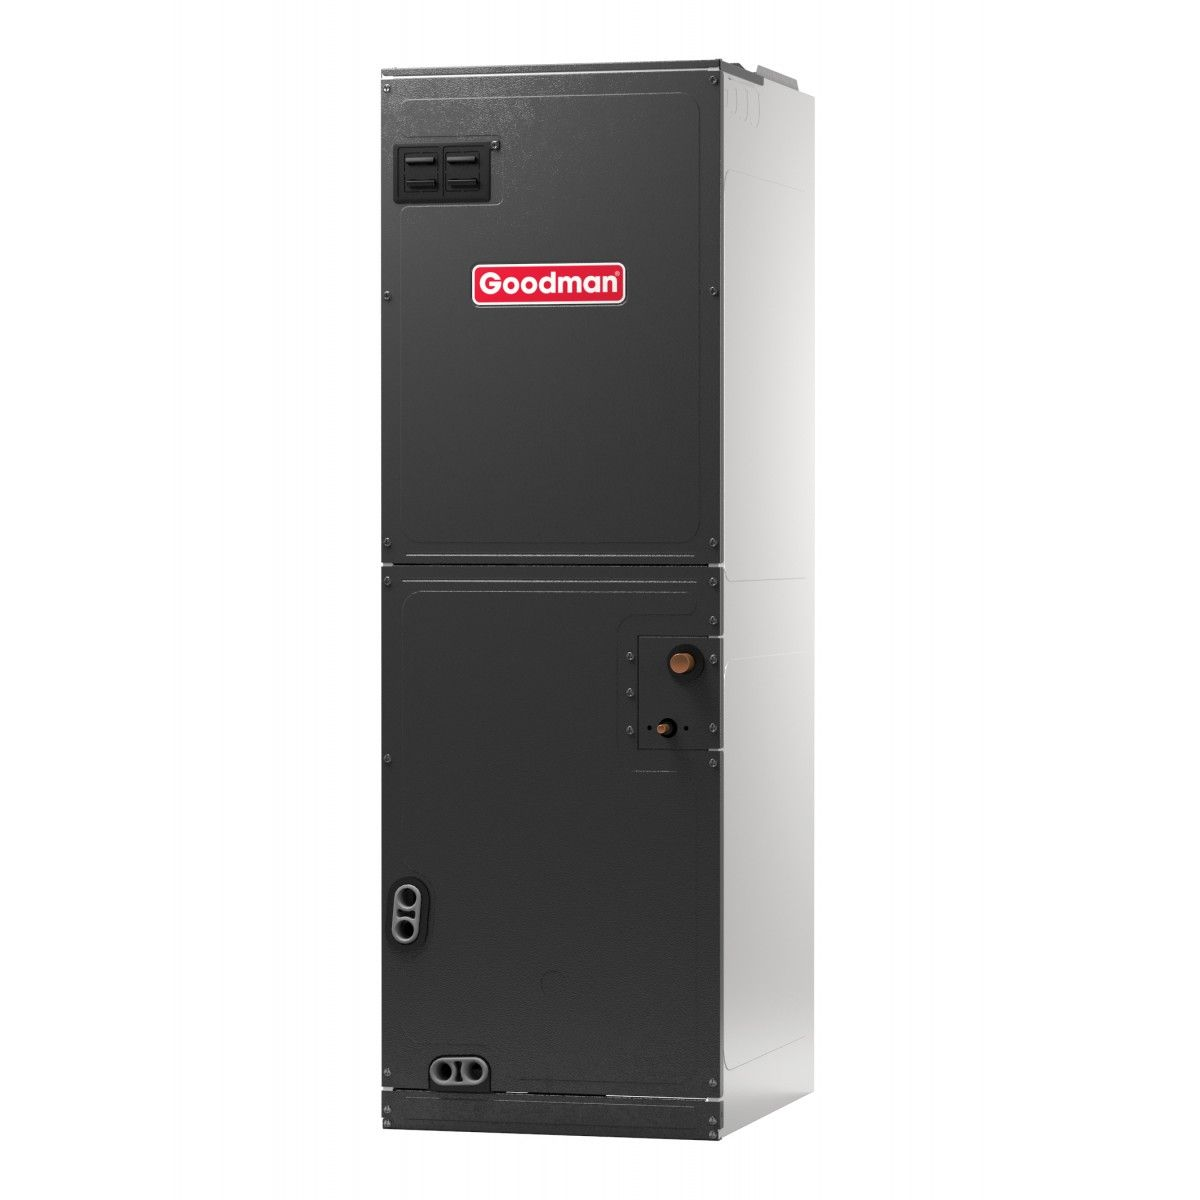 #B6152A Goodman 4.0 Ton 14.5 SEER Cooling Only Split System In 3.5  Best 3253 Goodman Split System photos with 1200x1200 px on helpvideos.info - Air Conditioners, Air Coolers and more